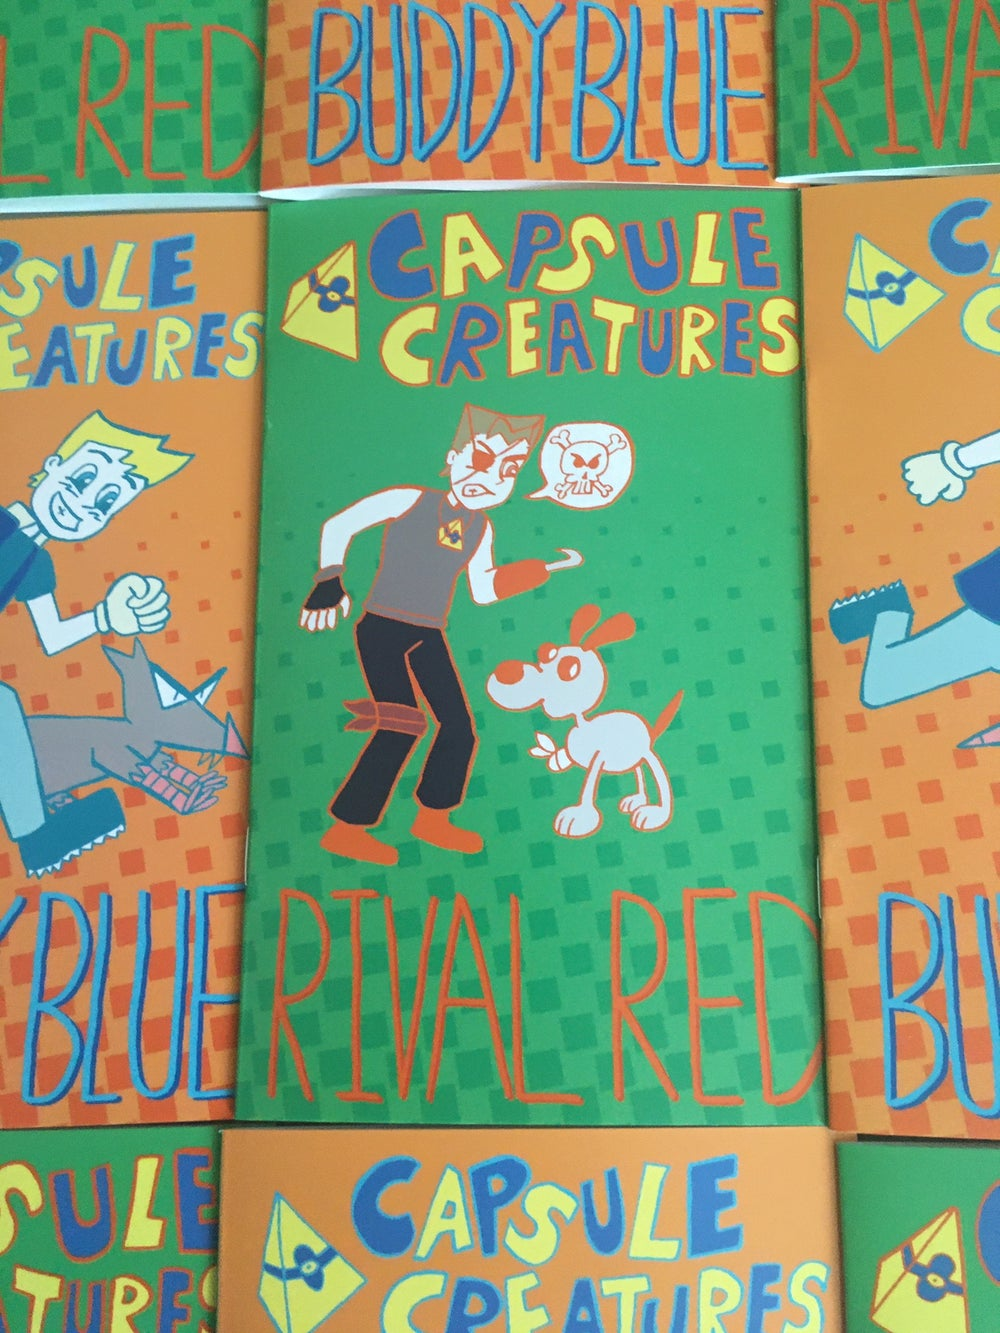 Capsule Creatures: Rival Red & Buddy Blue